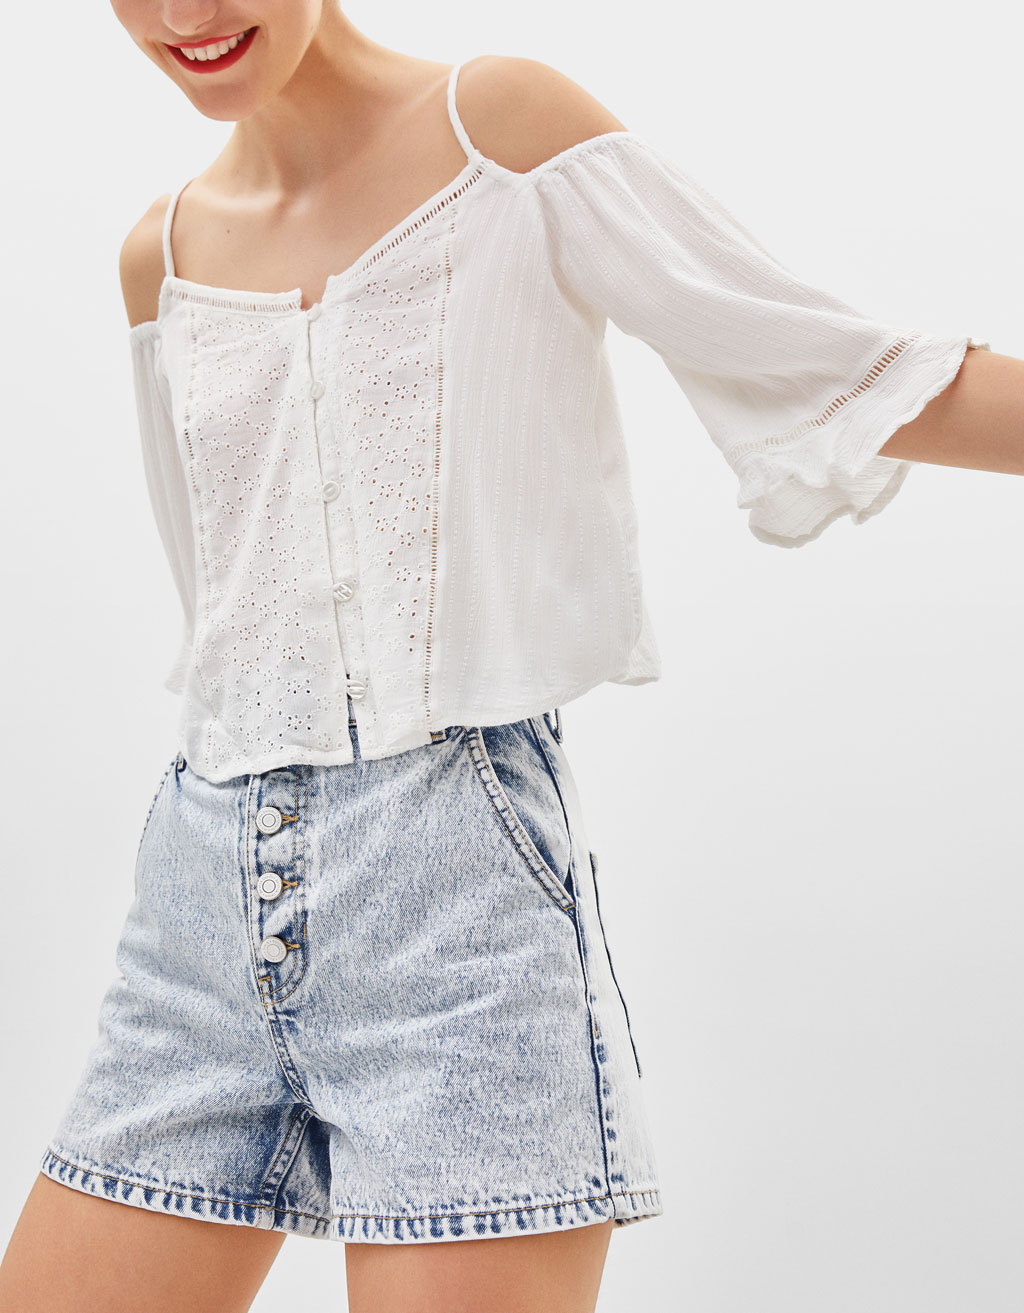 Off-the-shoulder blouse with ruffled sleeves